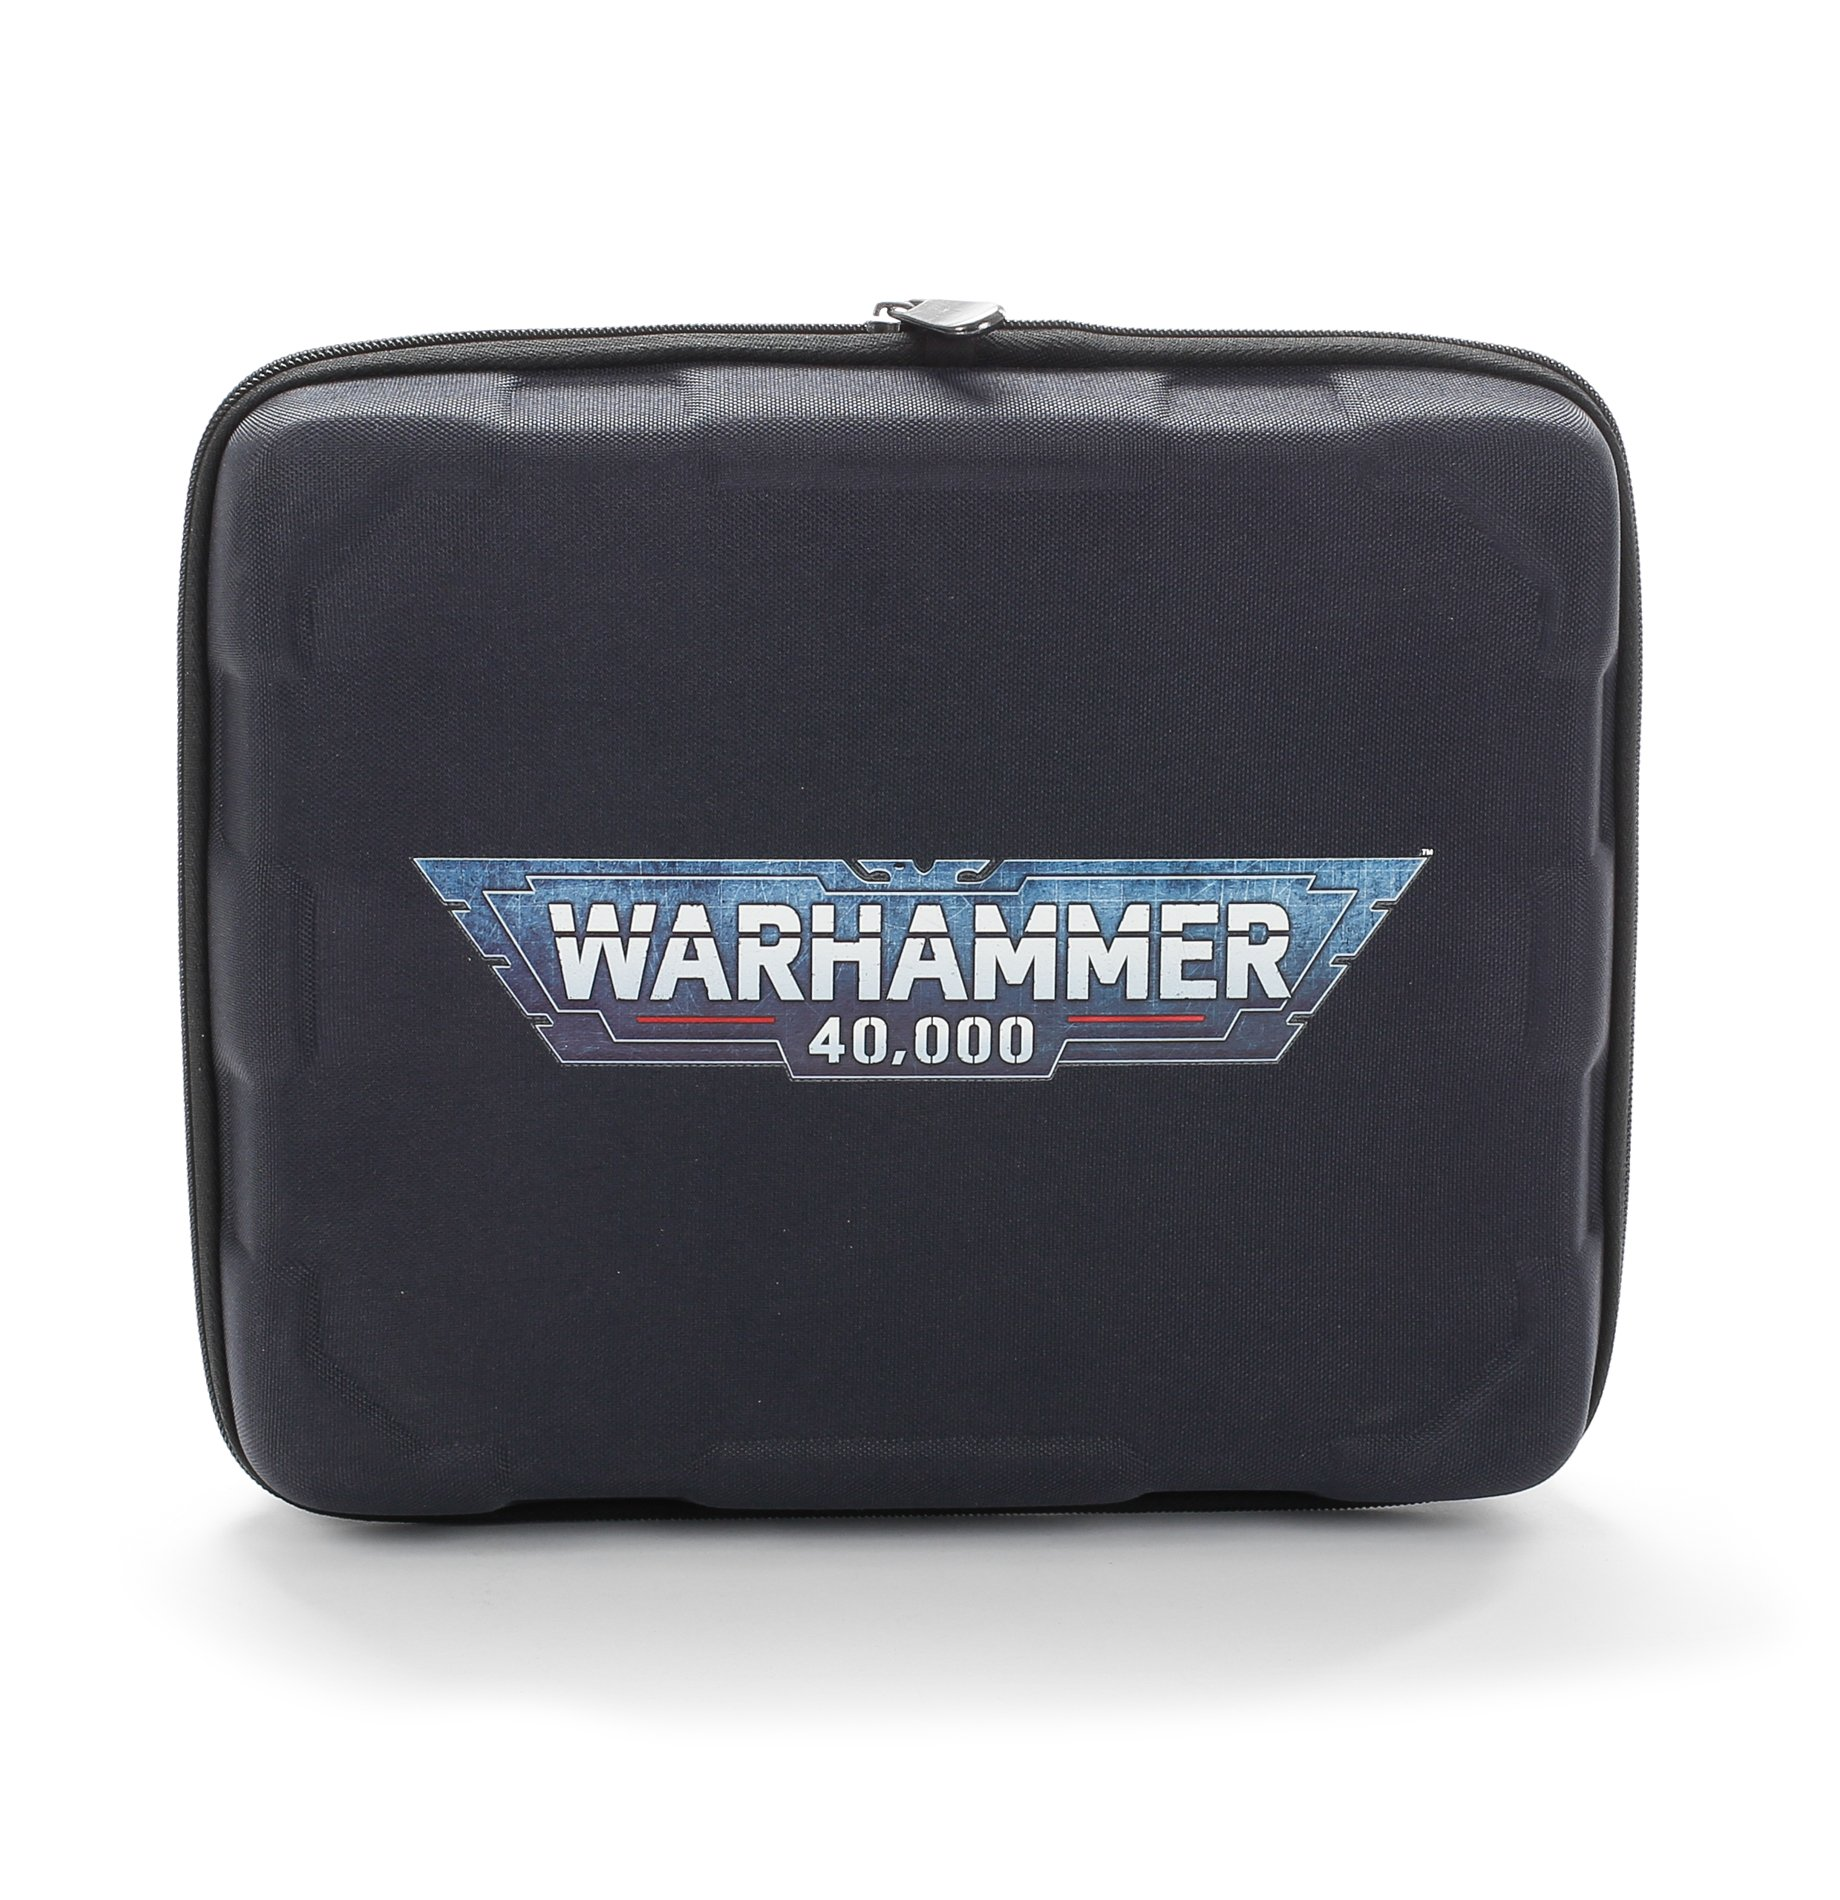 Warhammer 40,000: Carry Case